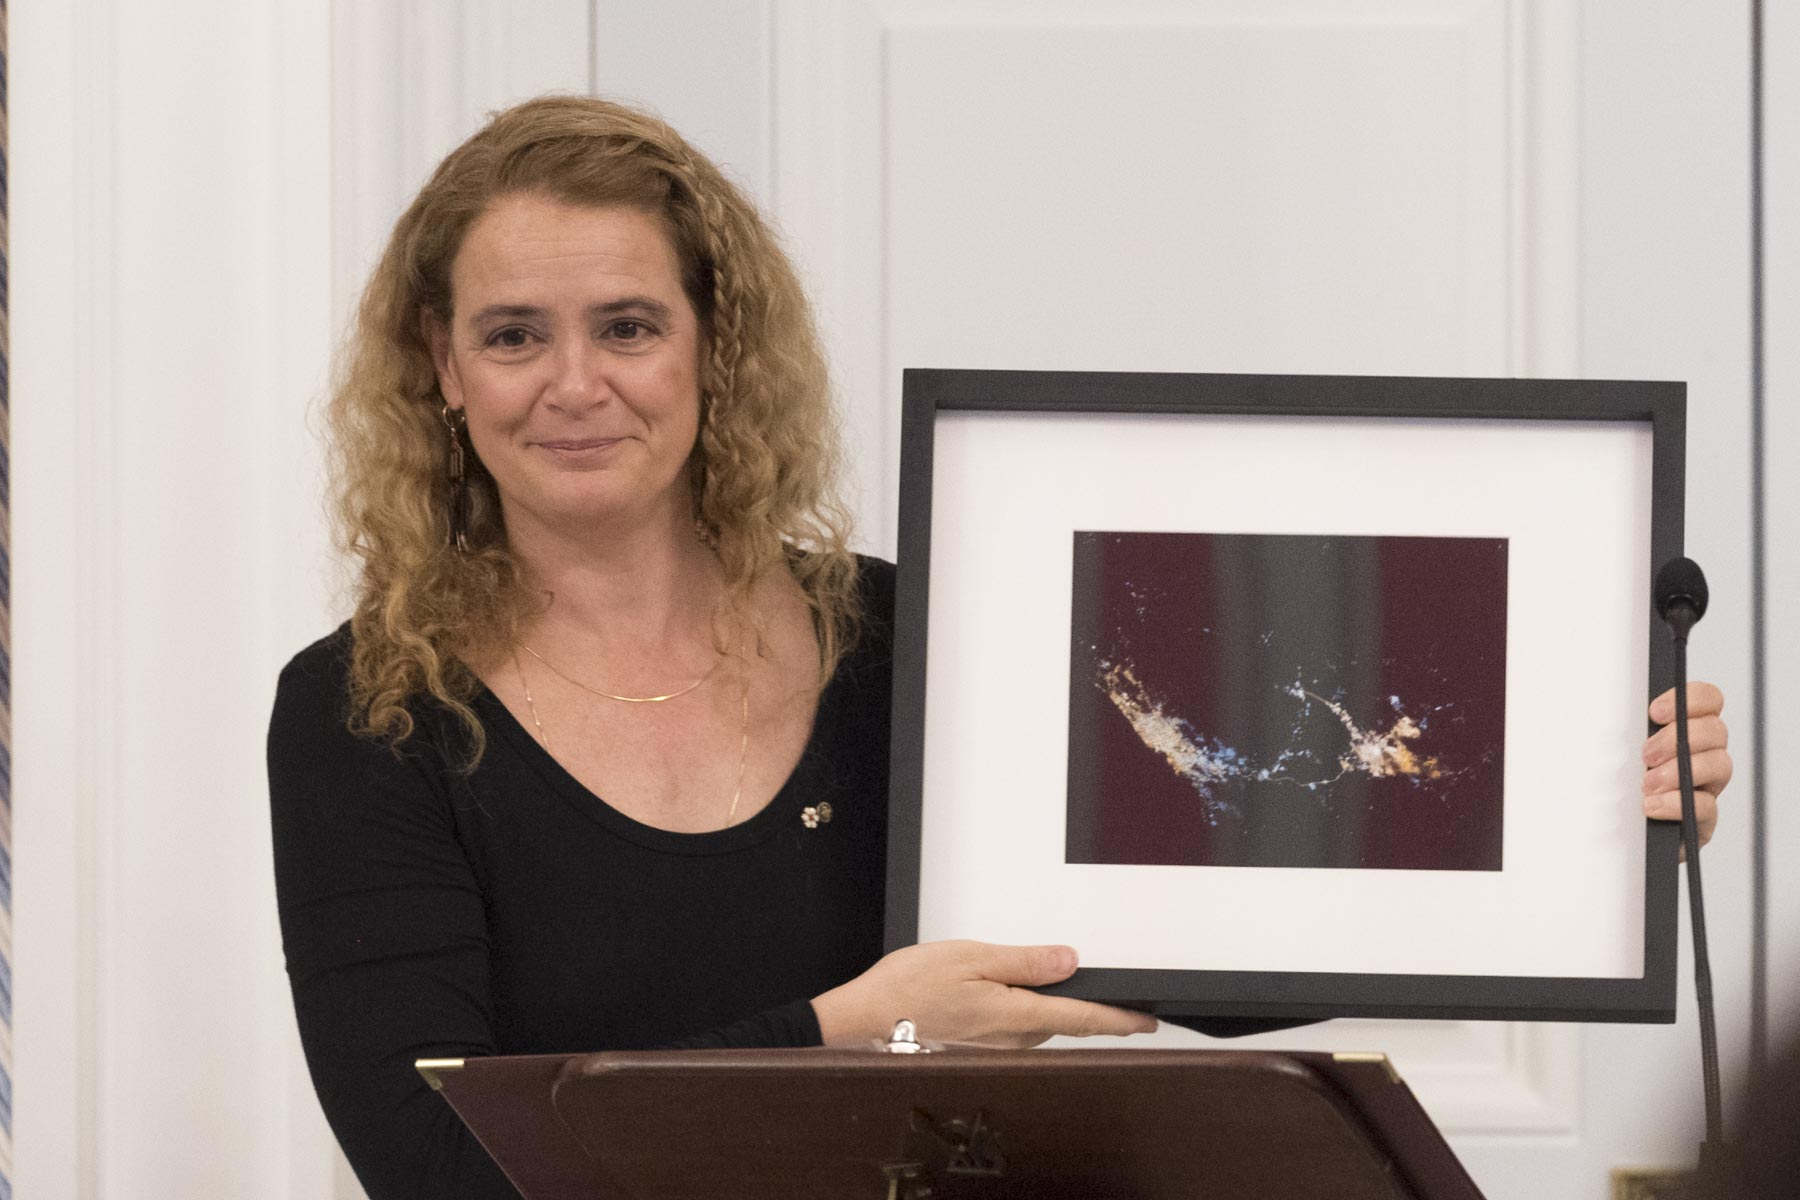 To thank His Highness for his great involvment with Canada, the Governor General presented him with a photo of Djeddah and Mecca taken from space.